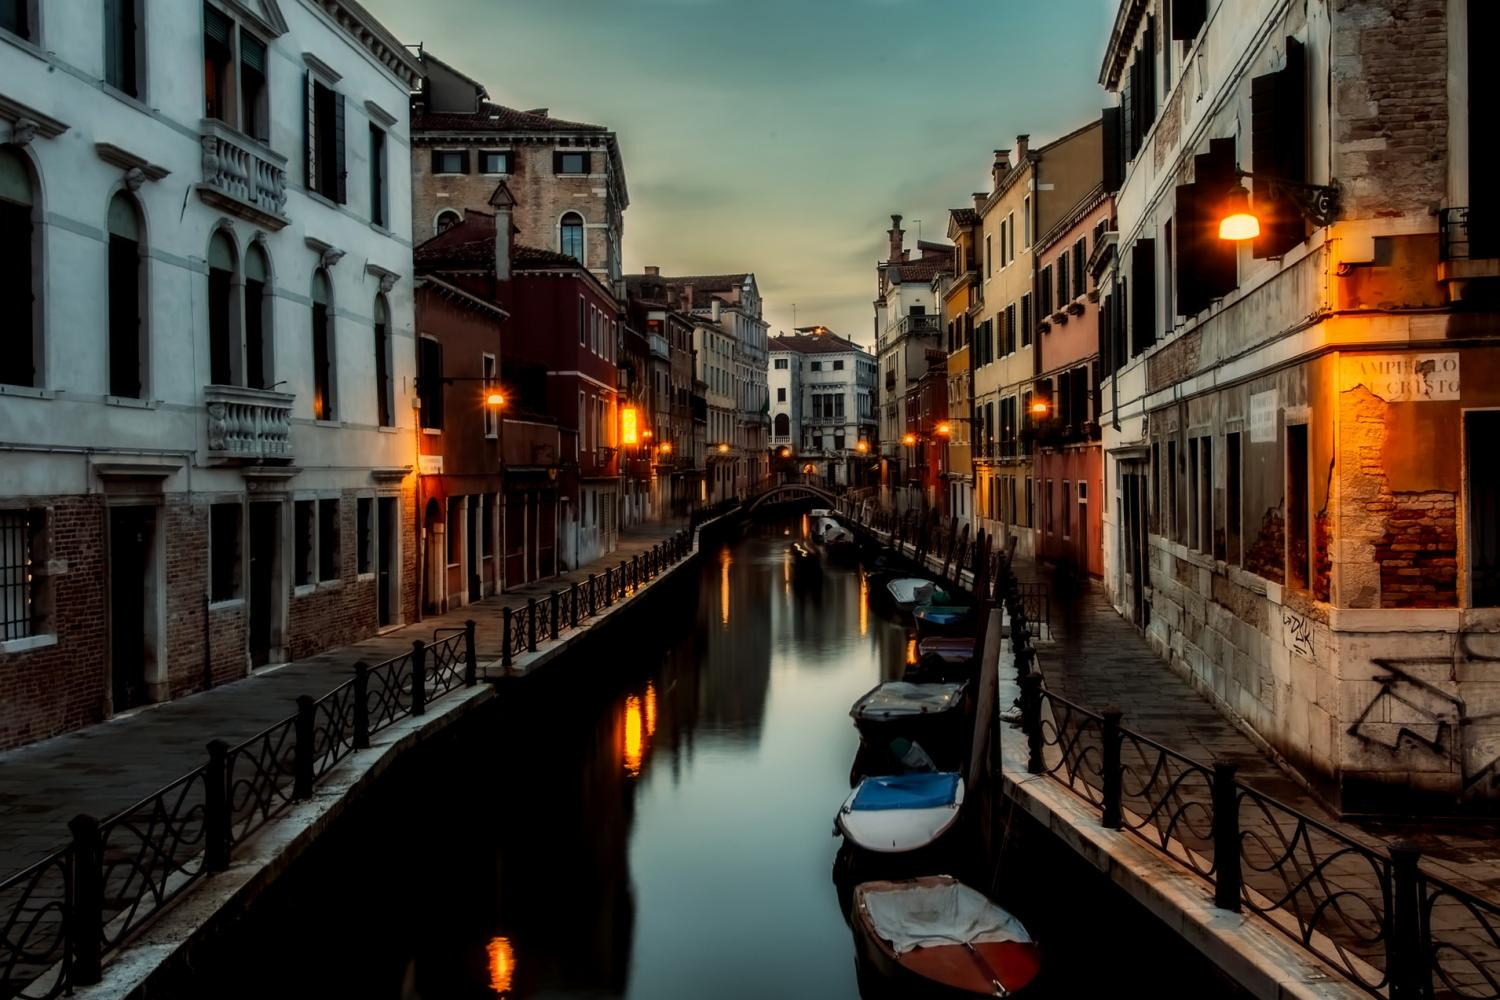 Traditional Dinner in a Venetian Restaurant with Canal View